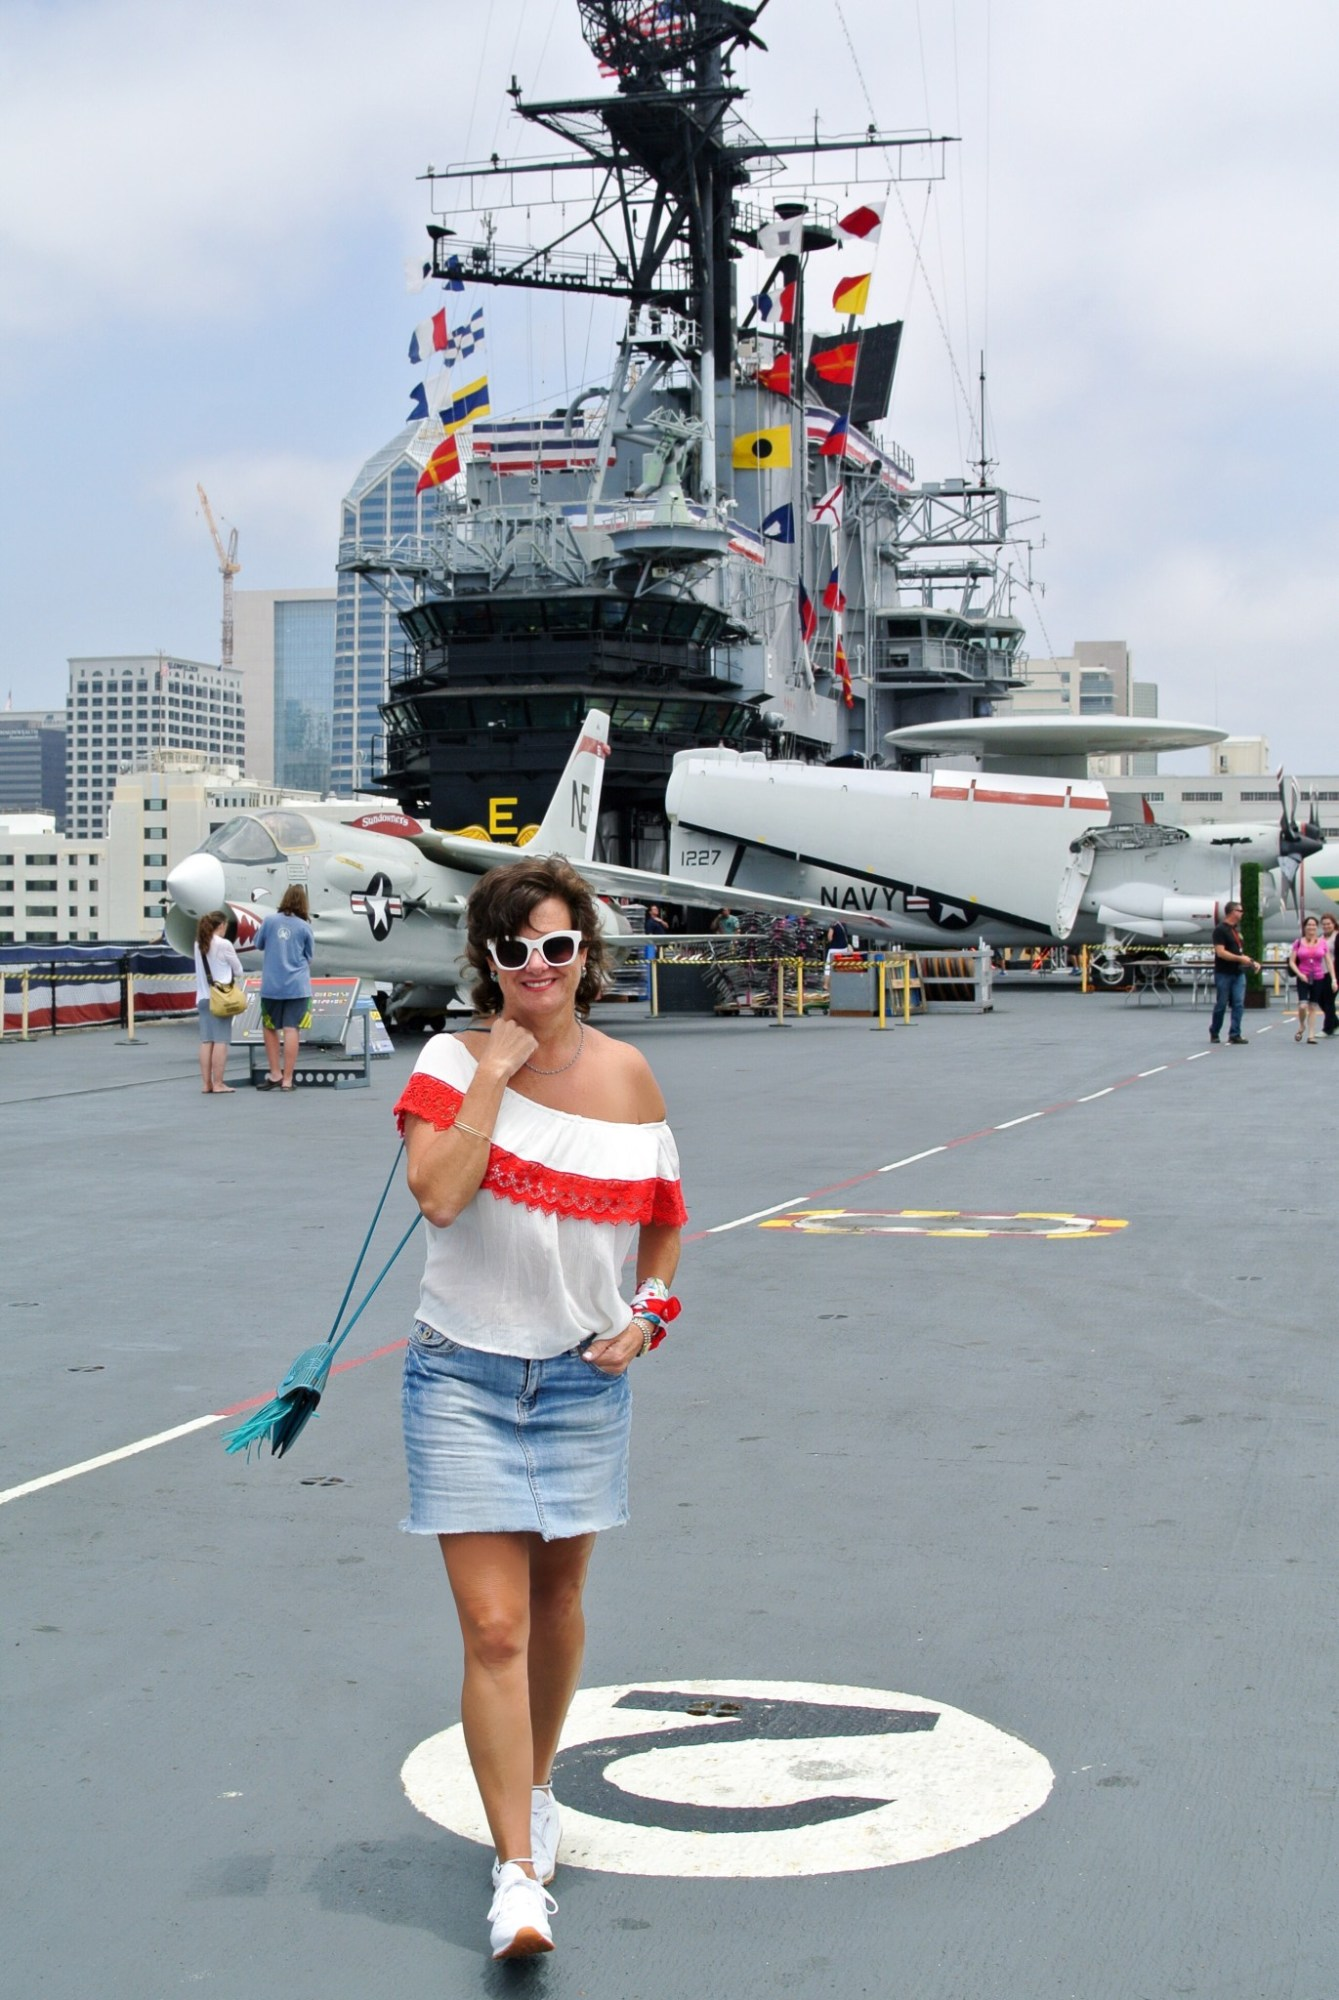 USS Midway 1